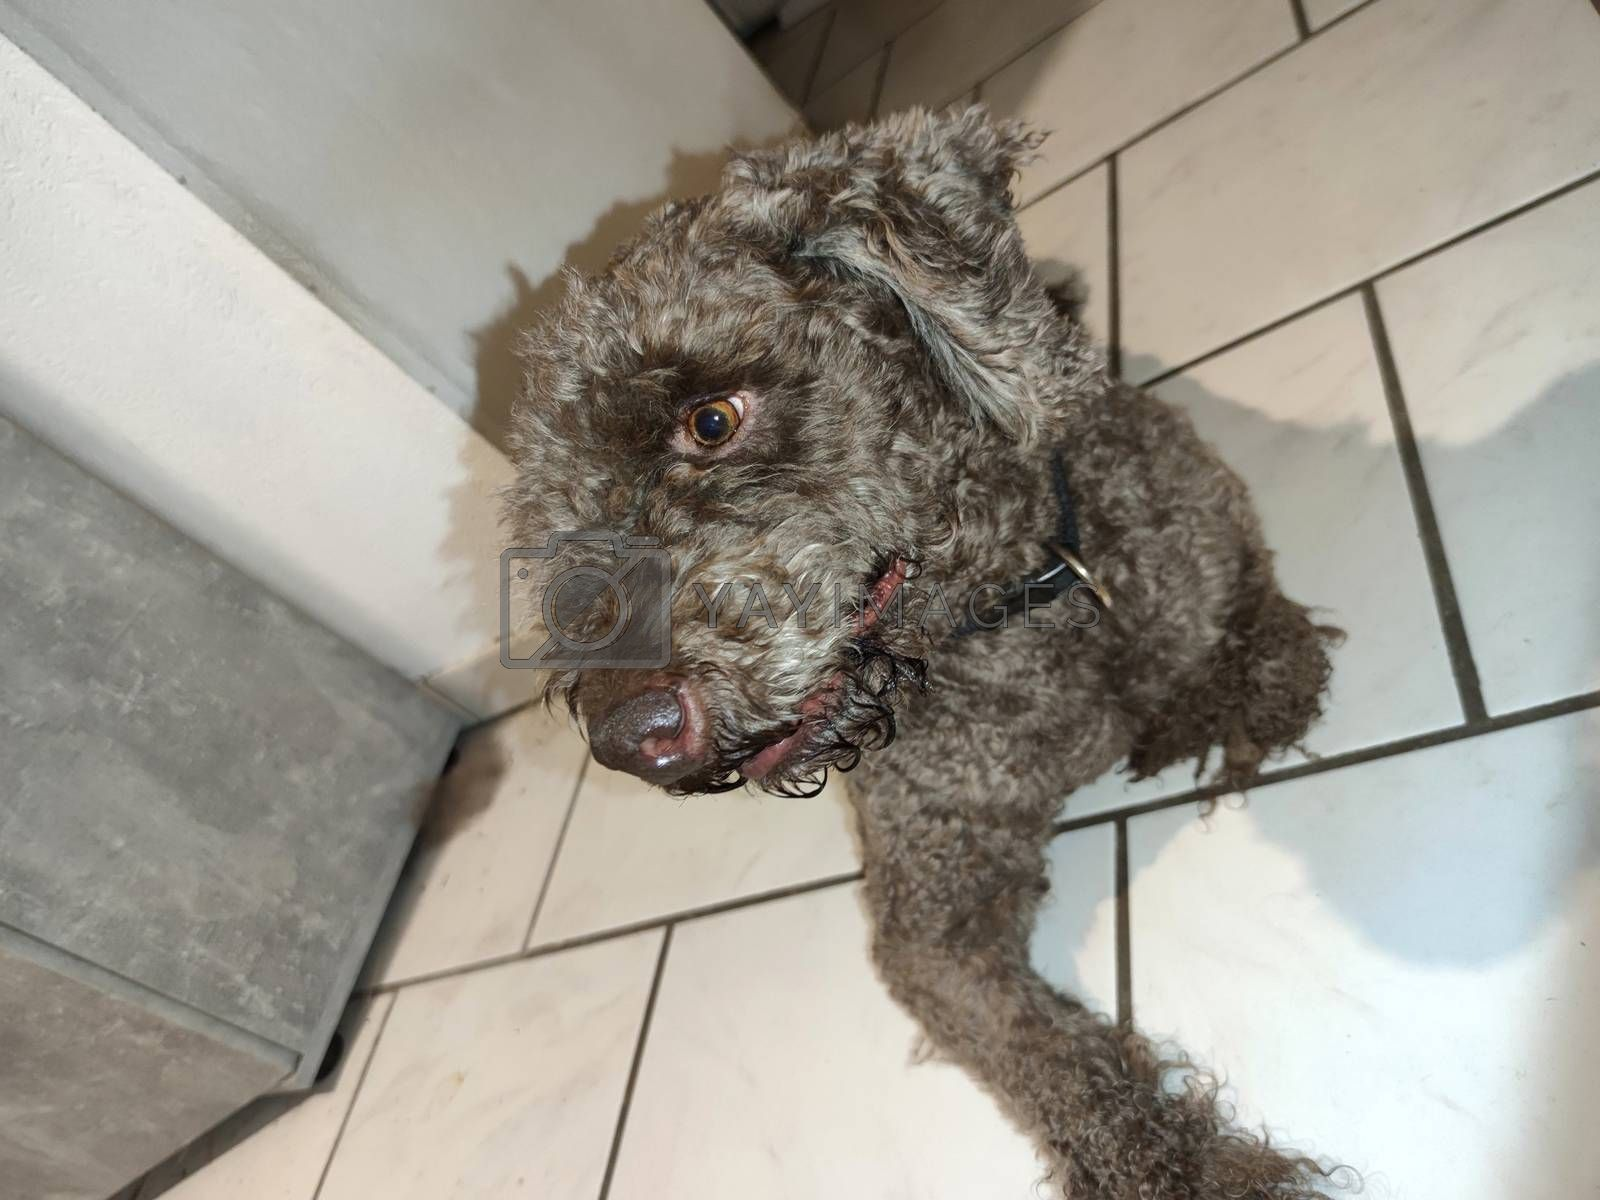 Sitting dog profile brown lagotto romagnolo truffle breed close up background modern high quality prints